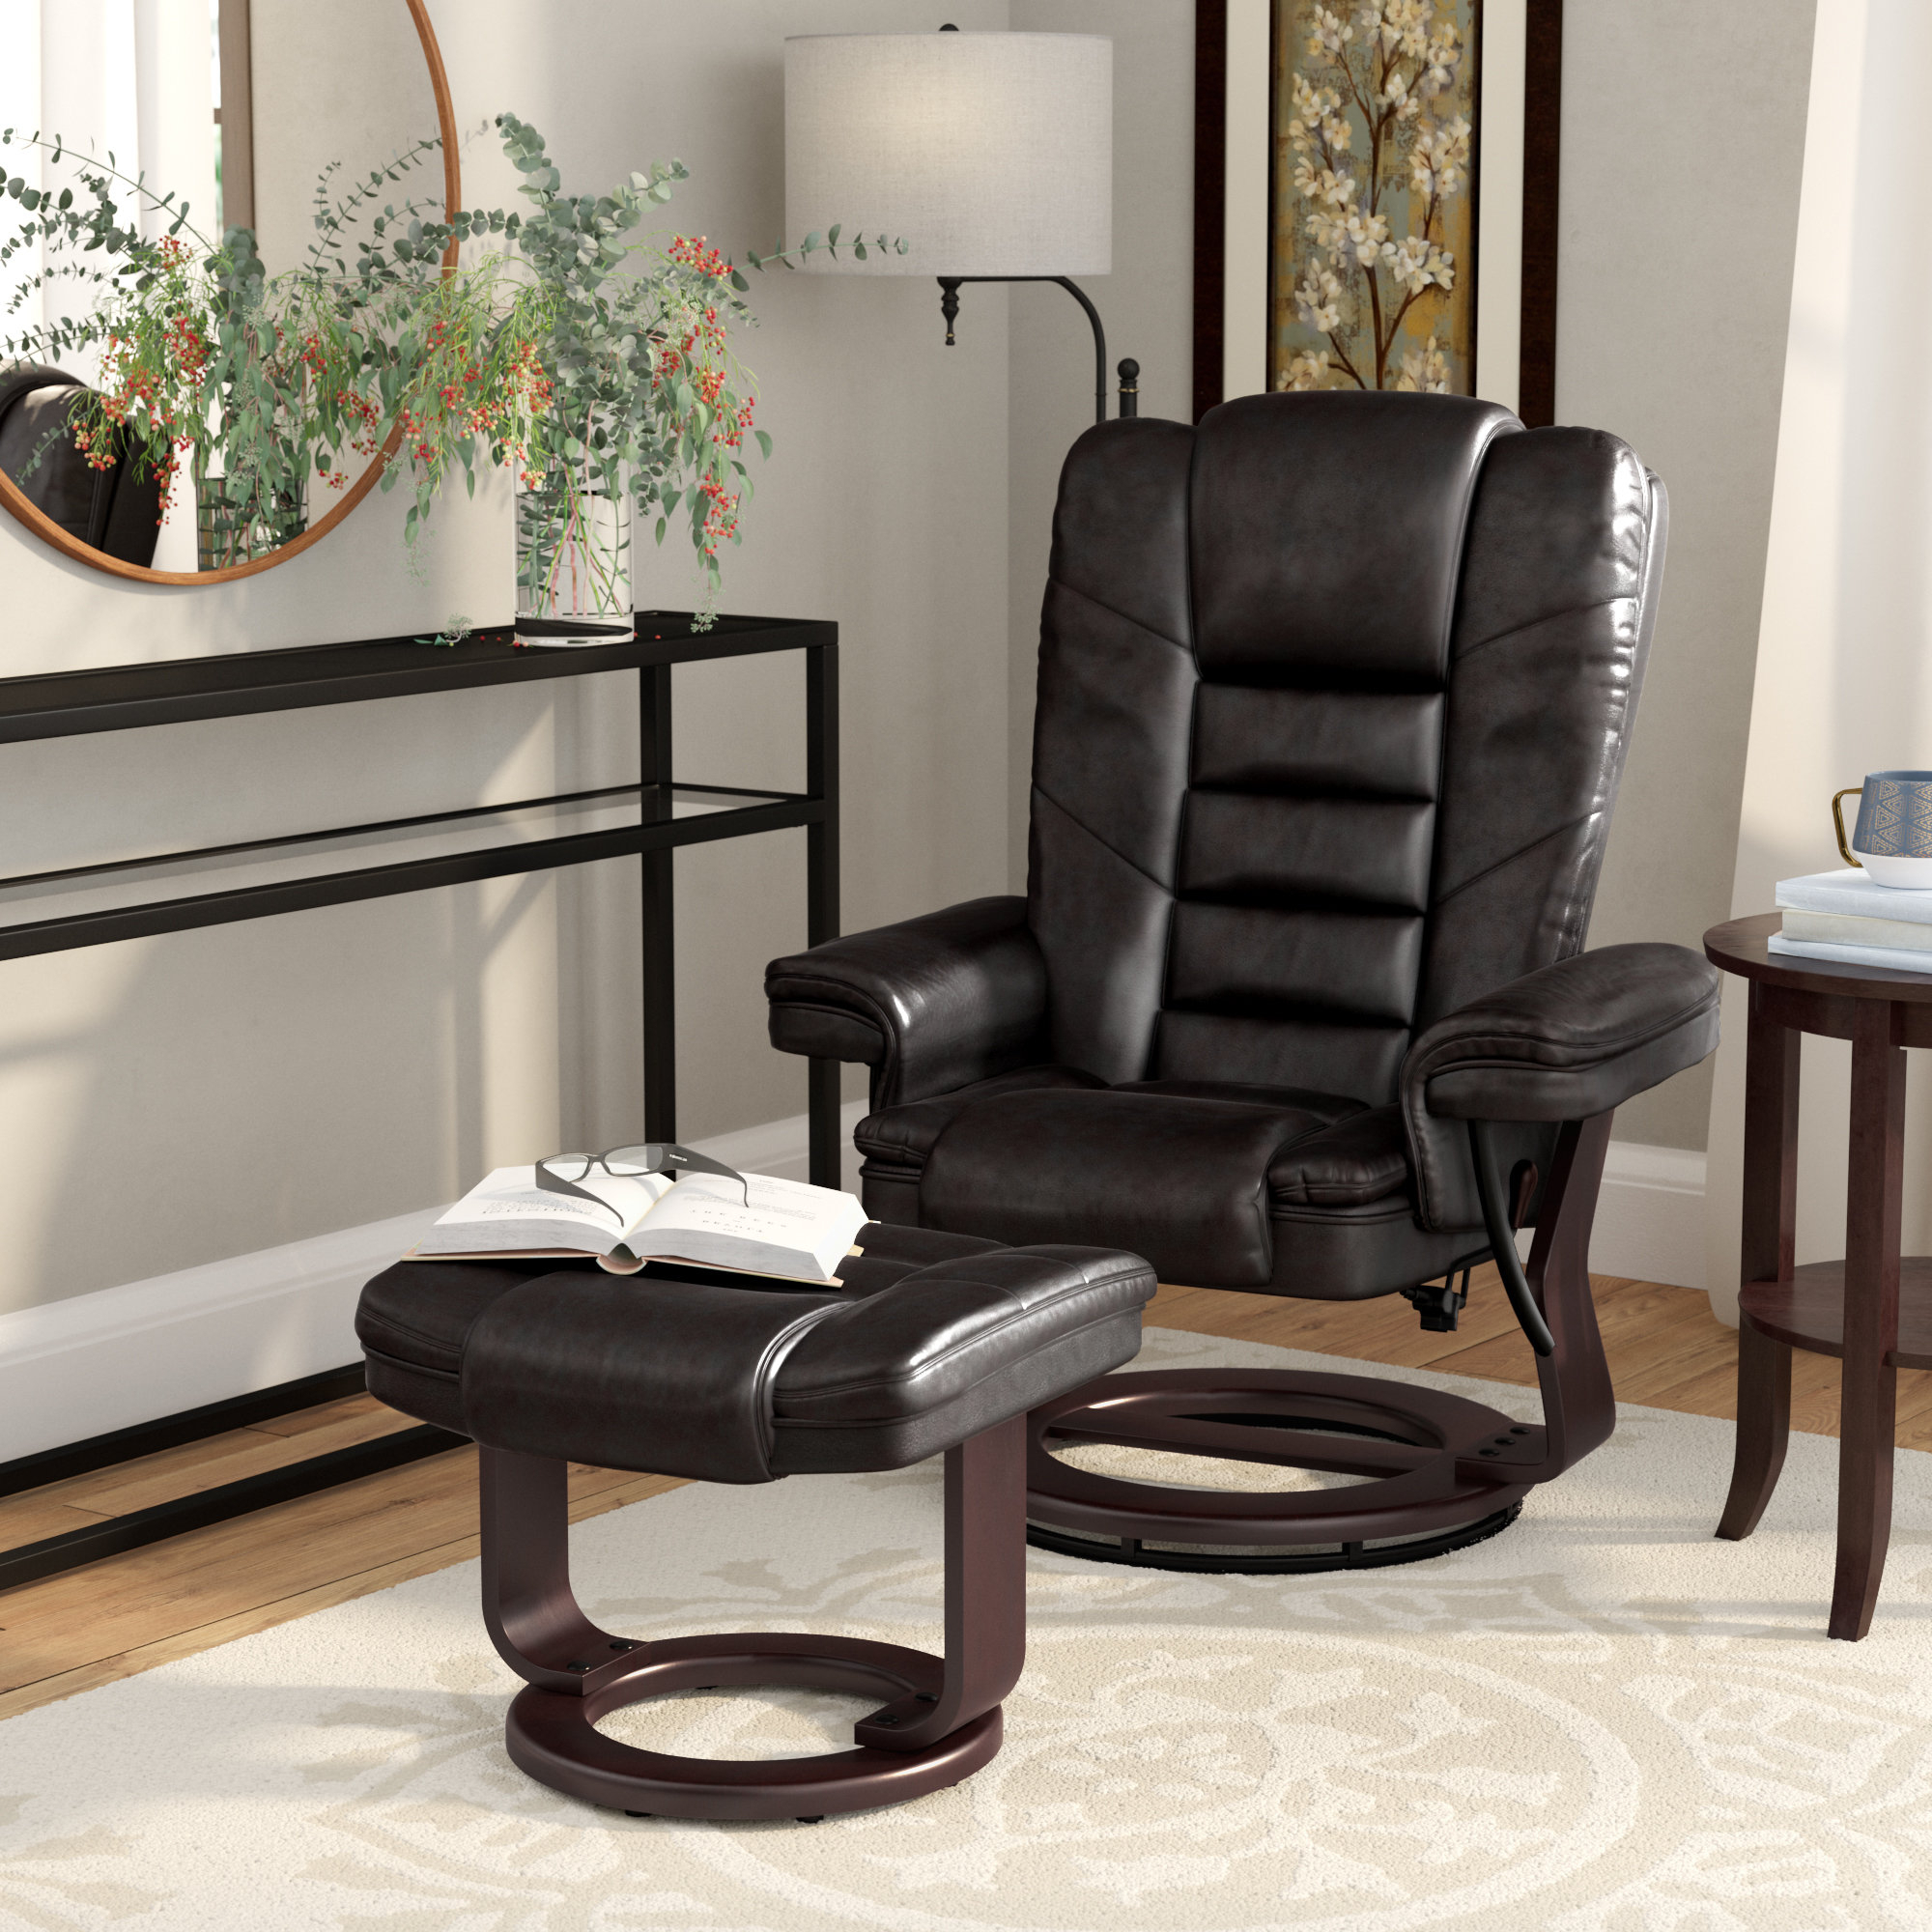 Fashionable Alcott Hill Hammersdale Manual Swivel Recliner With Ottoman Inside Dale Iii Polyurethane Swivel Glider Recliners (View 15 of 20)